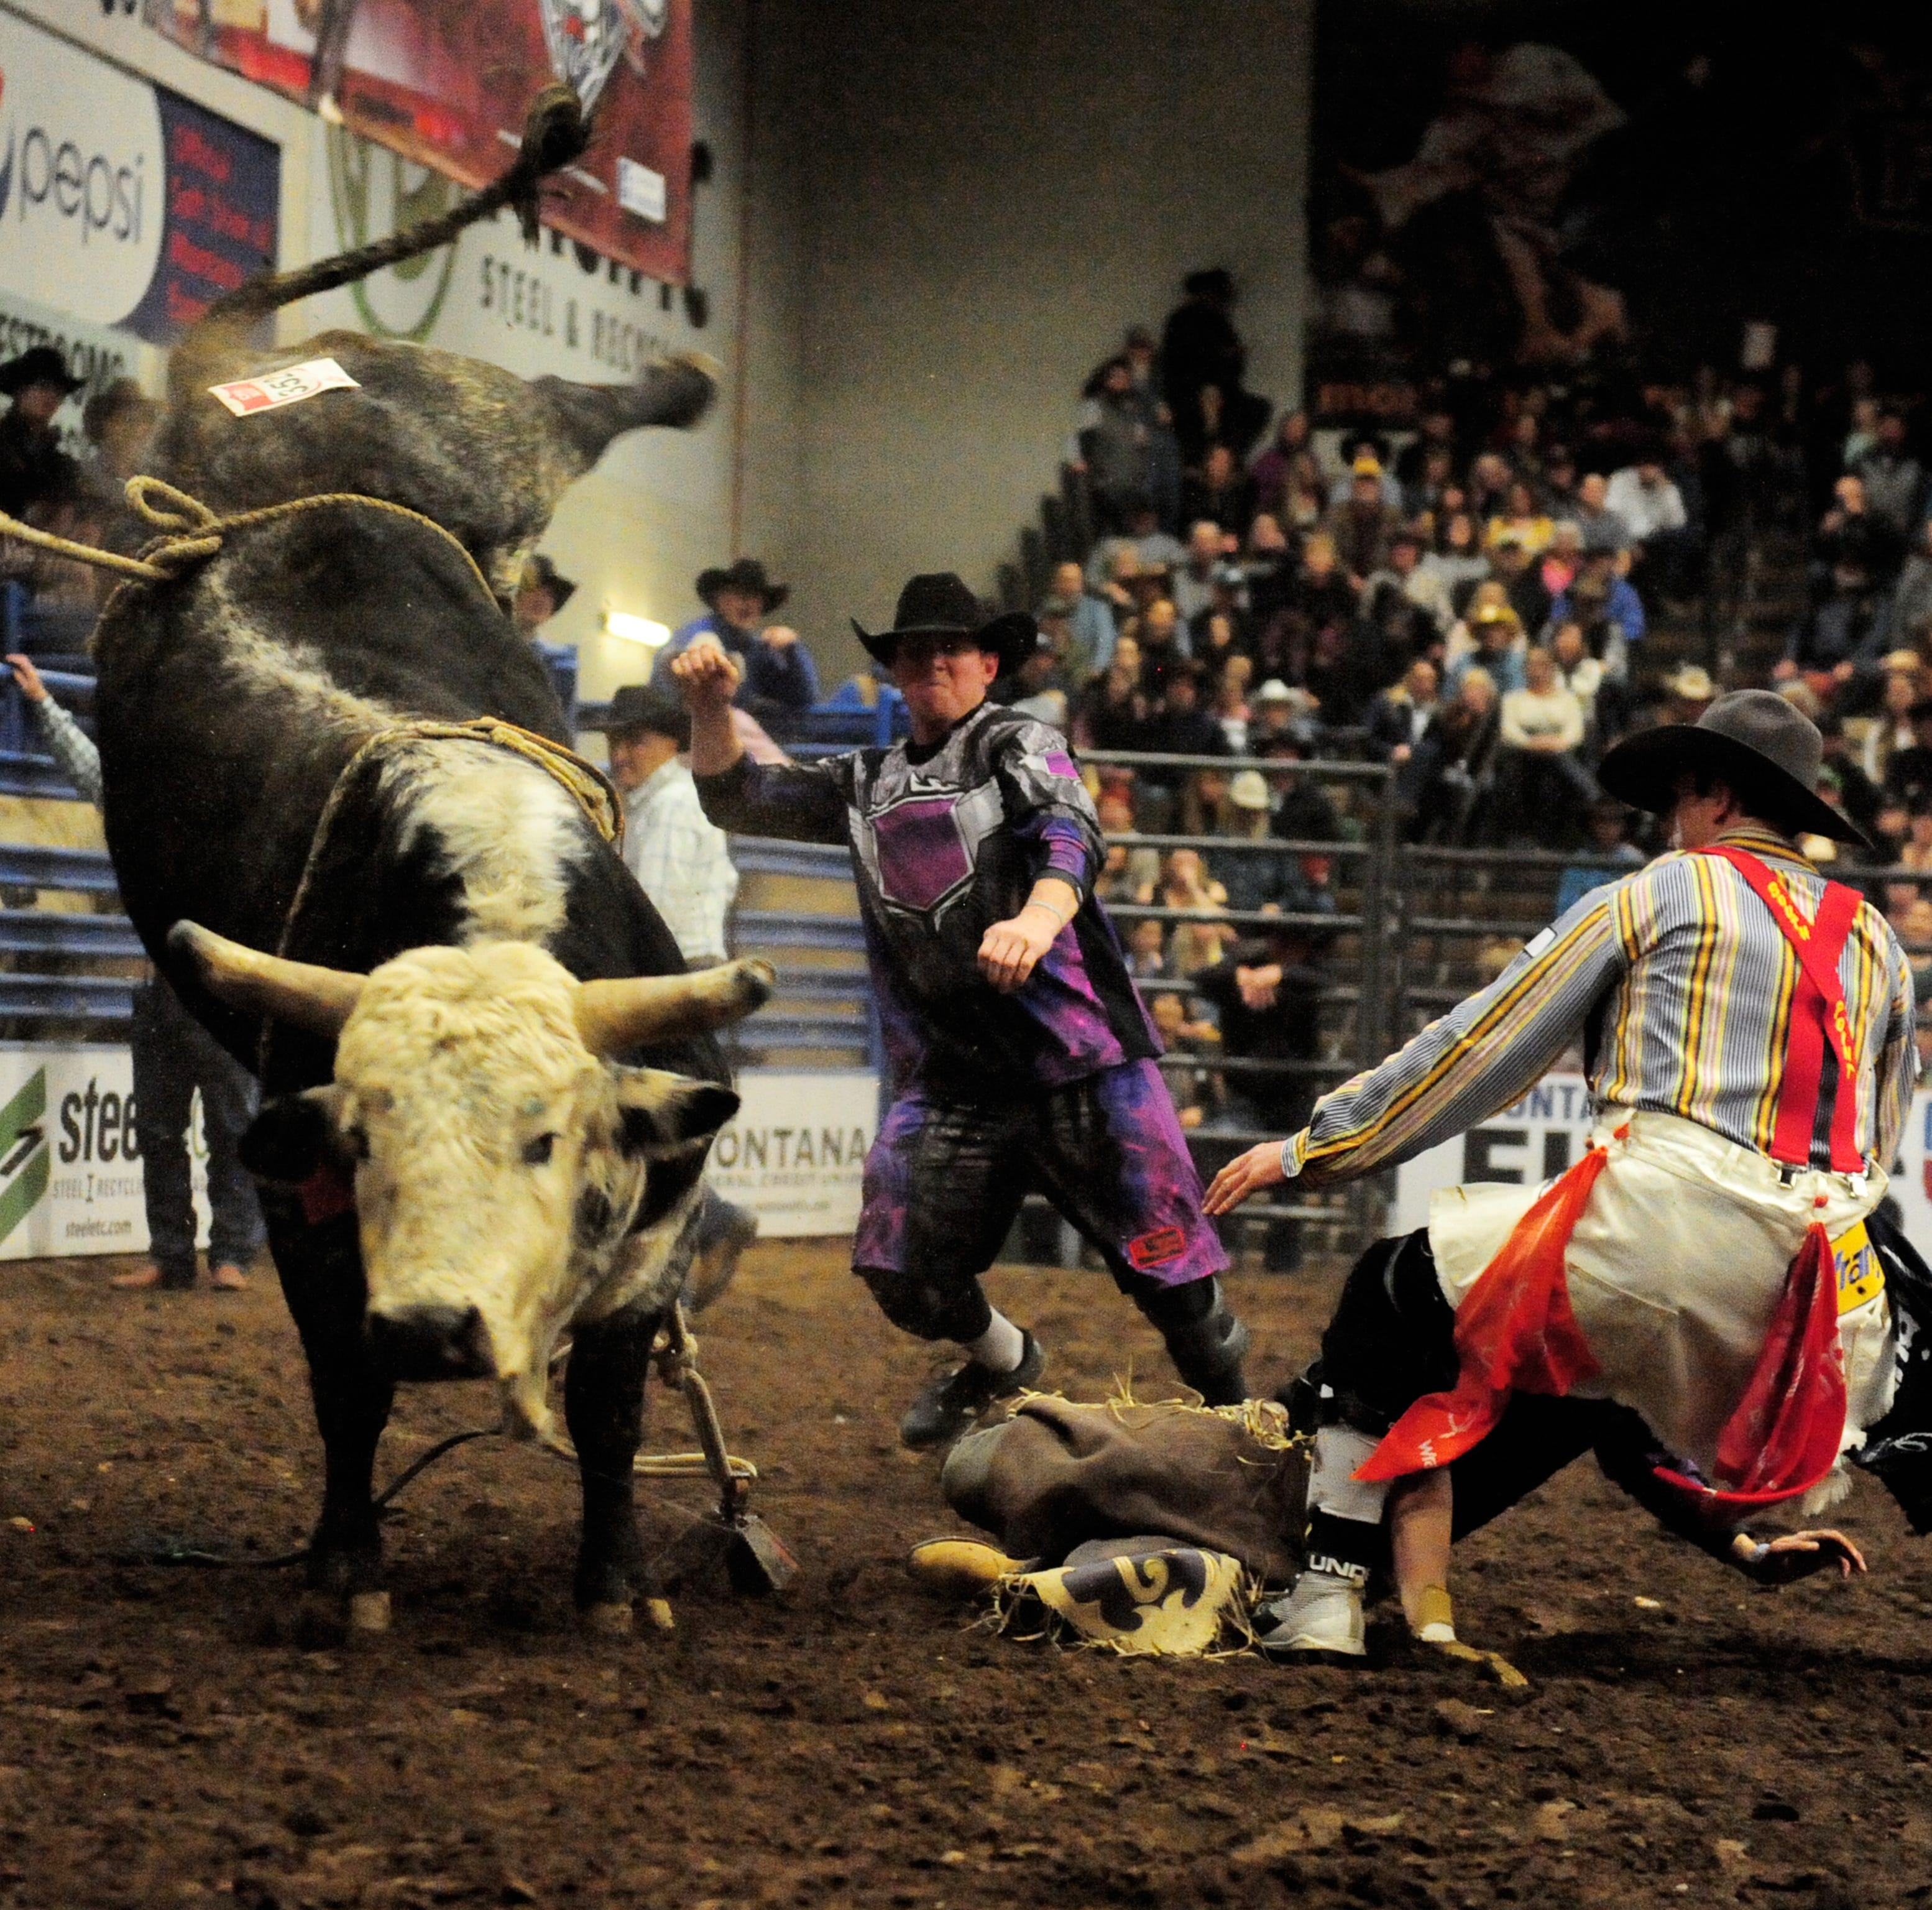 Bull rider dies at PBR event in Denver